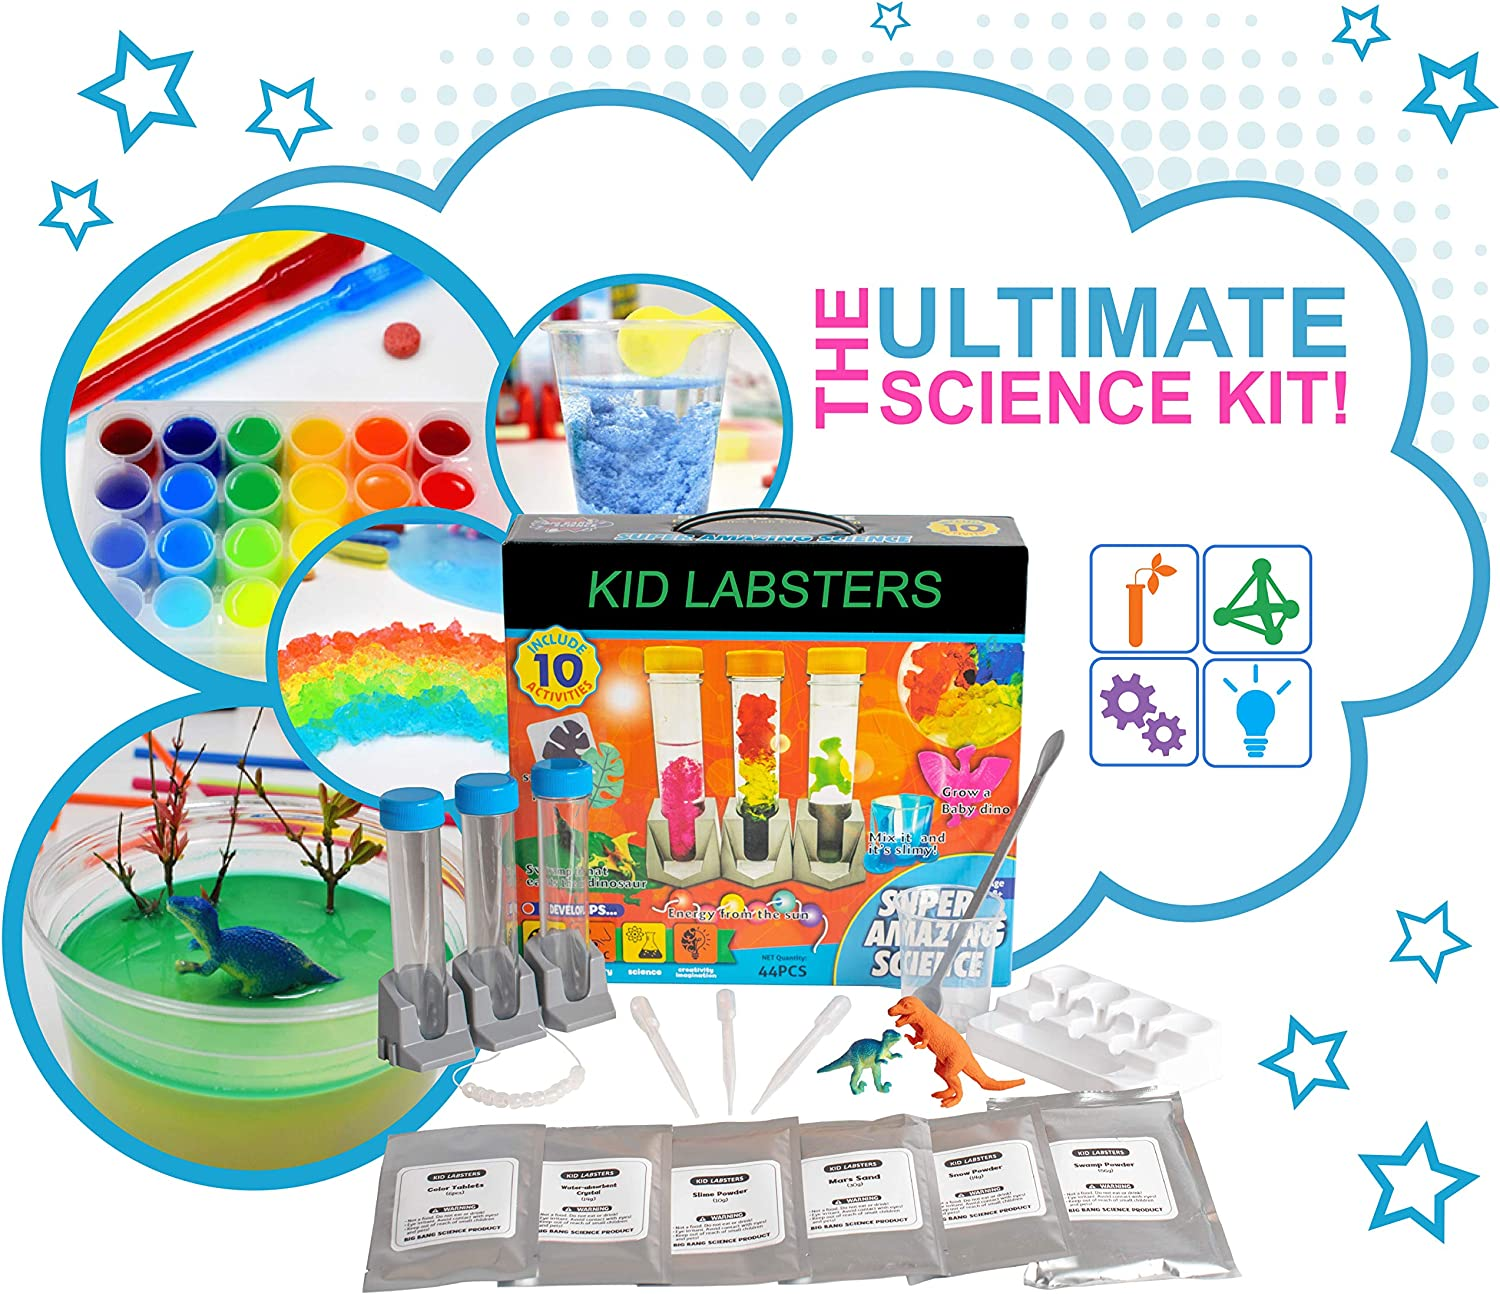 Kid Labsters Science 11-Piece Kit - Explosive Science Fair Chemistry Project w/ Tools & Non Toxic Chemicals - Scientific Experiment & STEM Learning Set for Kids